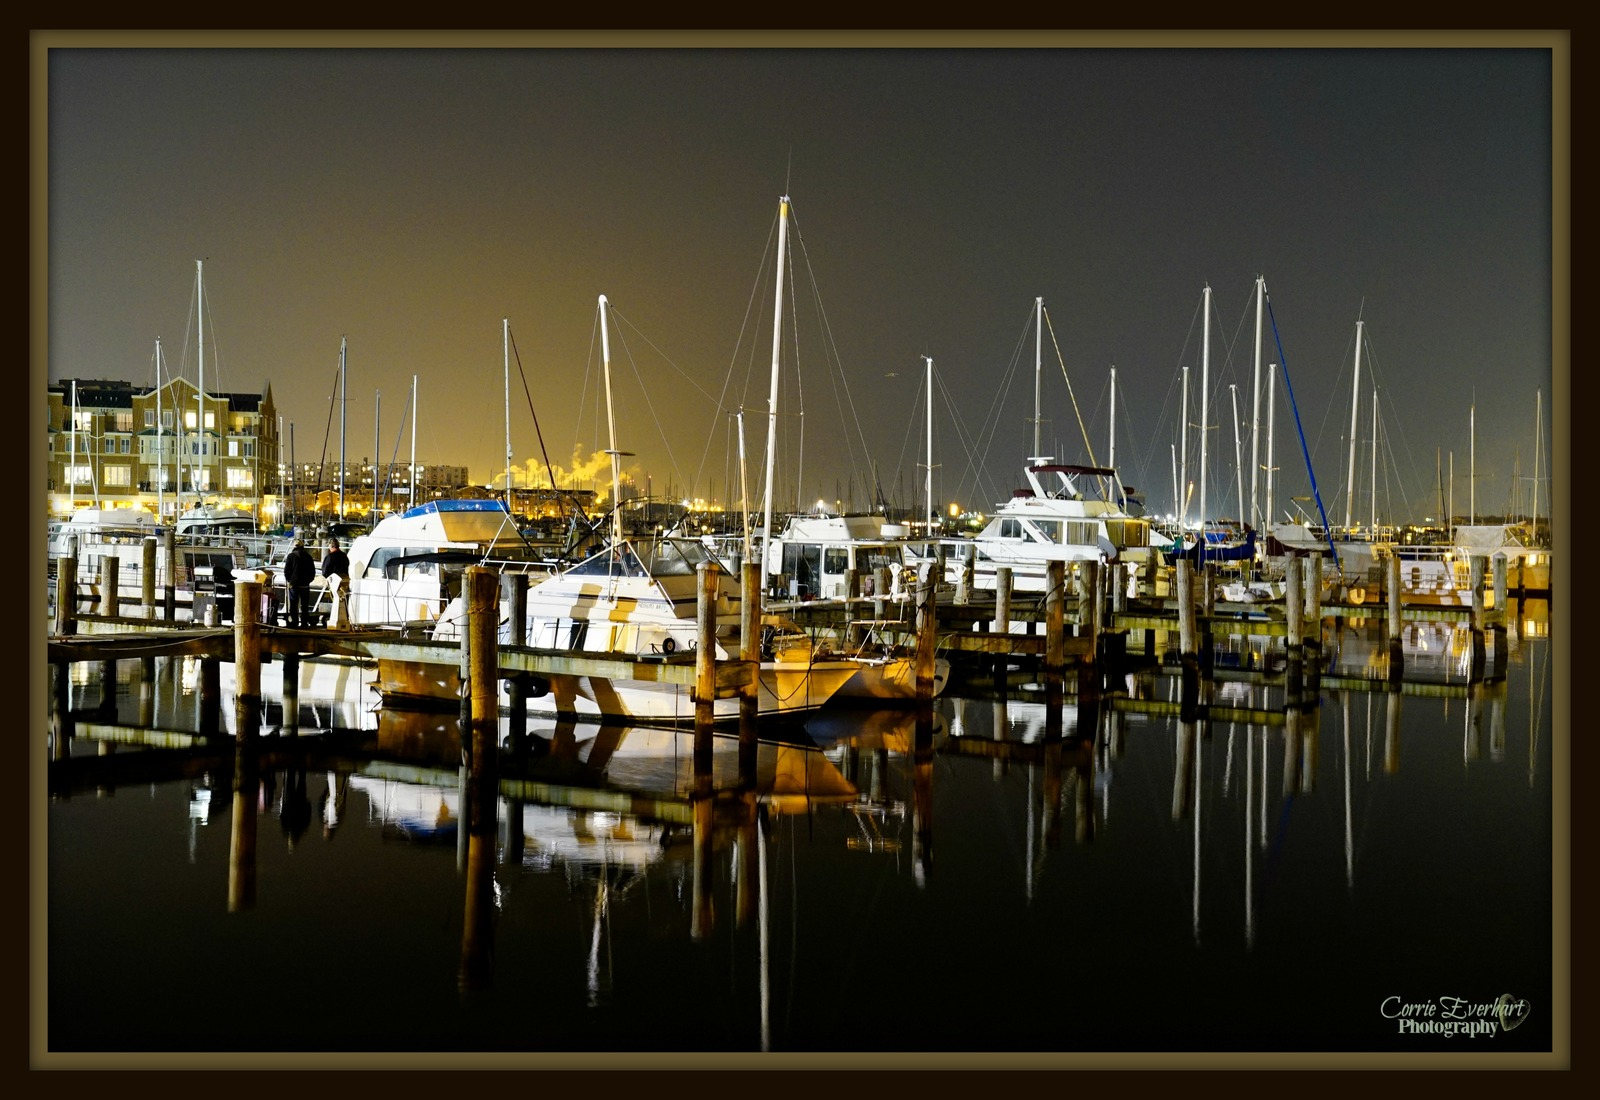 Primary image for Harbor nights @Fells Point